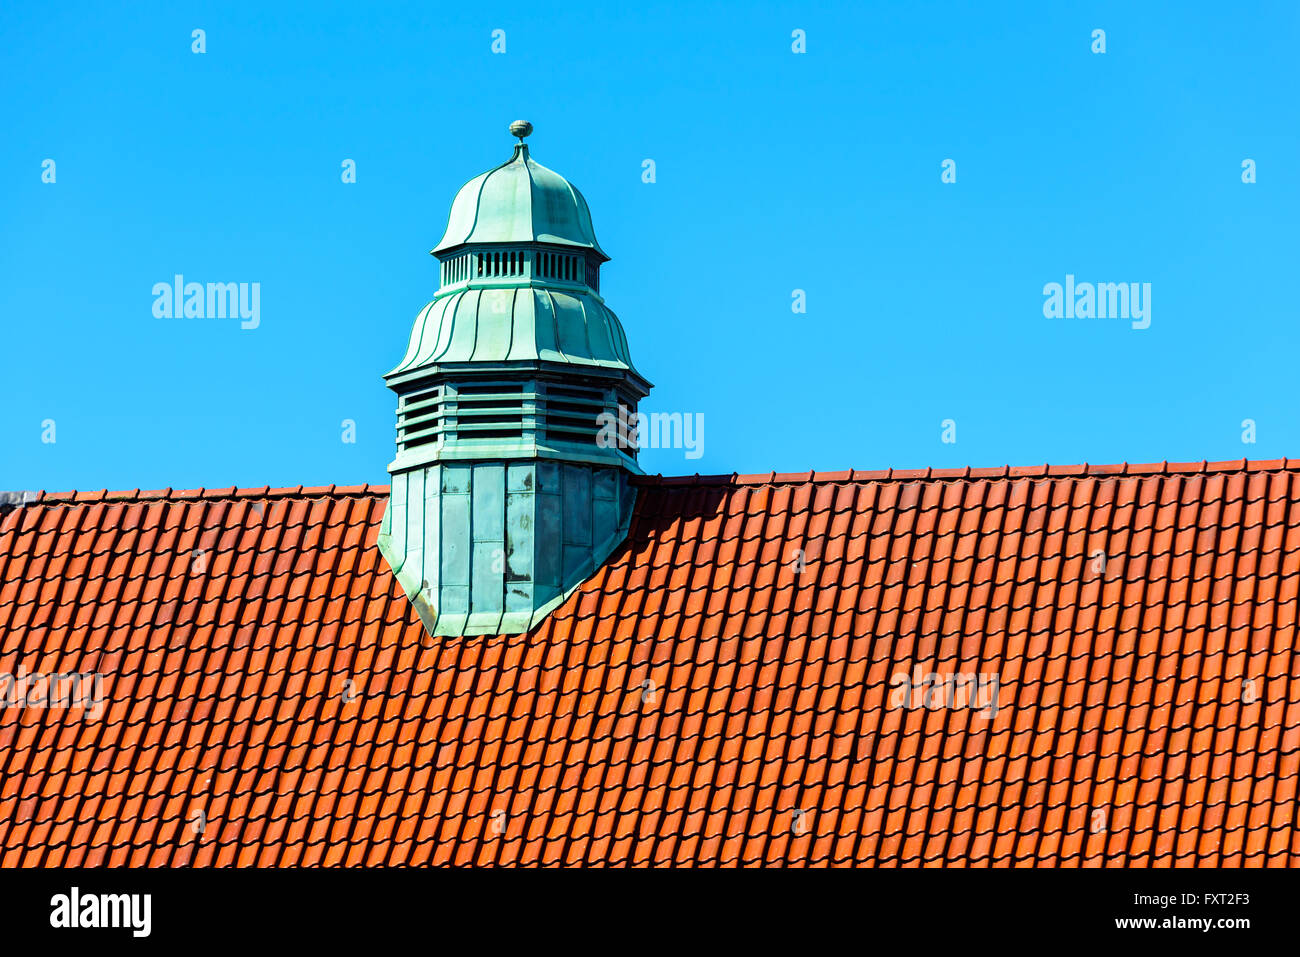 dome copper green stockfotos dome copper green bilder alamy. Black Bedroom Furniture Sets. Home Design Ideas